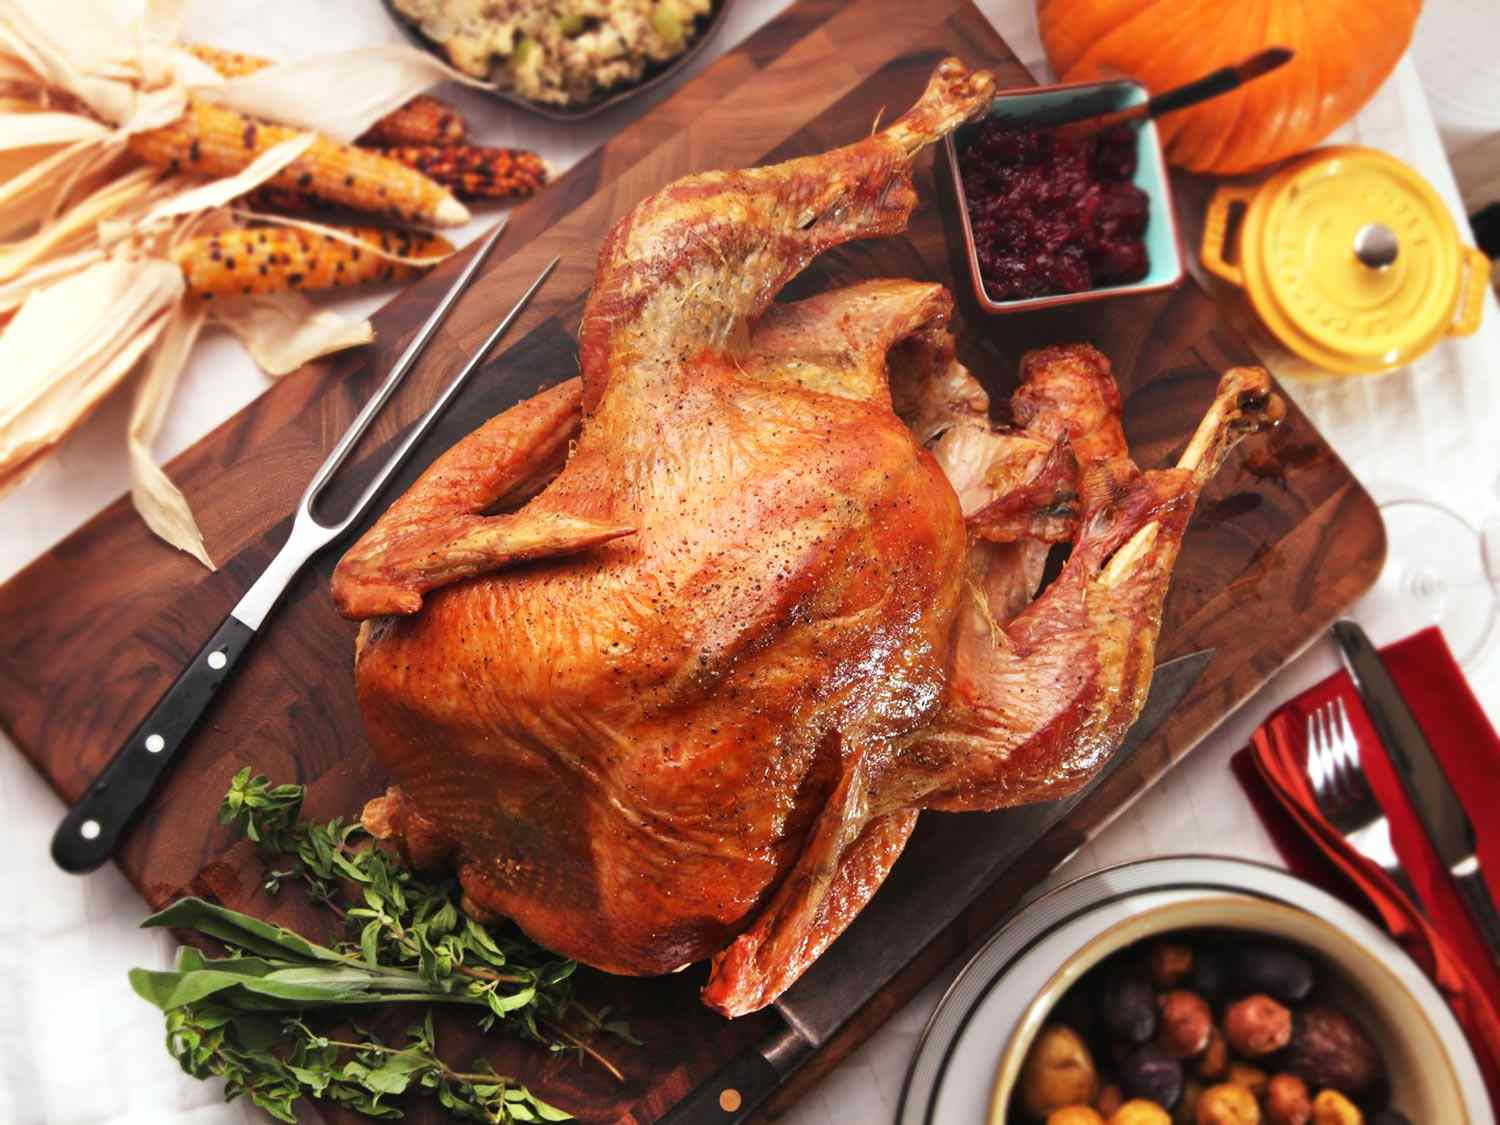 A whole roast turkey on a wooden board, next to a bunch of multicolored corn, a dish of potatoes, and other Thanksgiving accoutrements